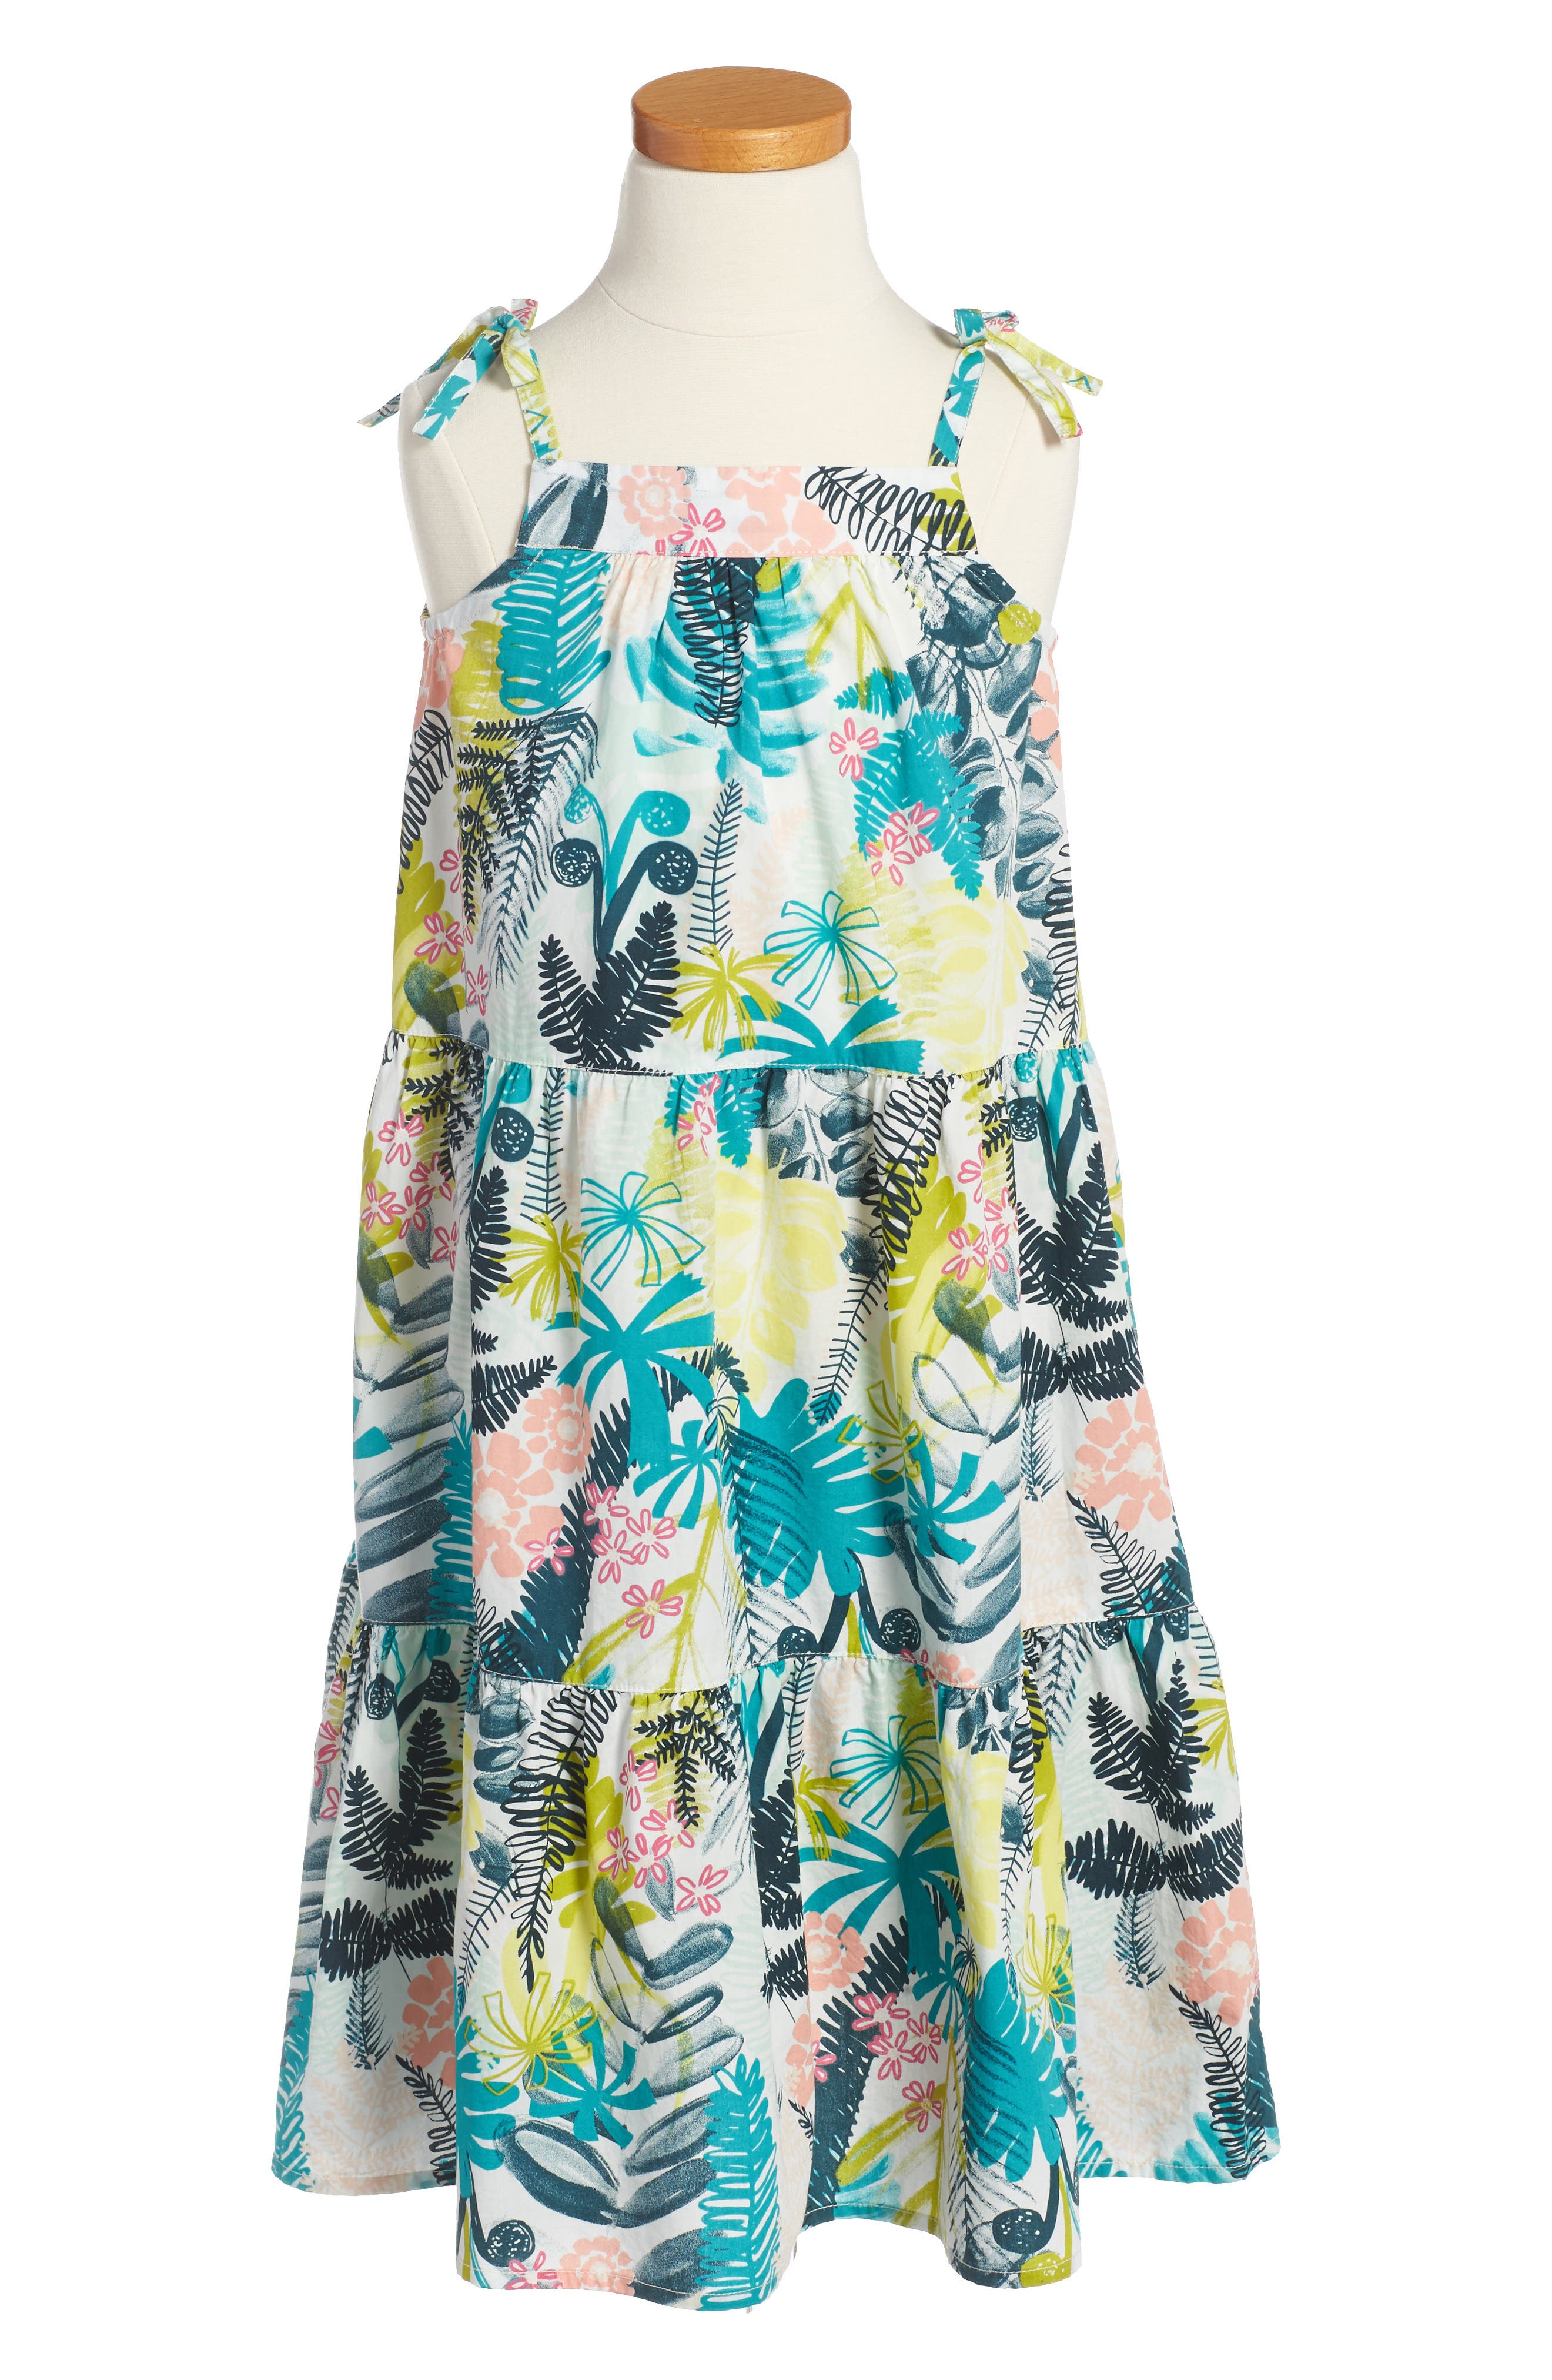 Wujal Wujal Print Tiered Sundress,                         Main,                         color, Chalk